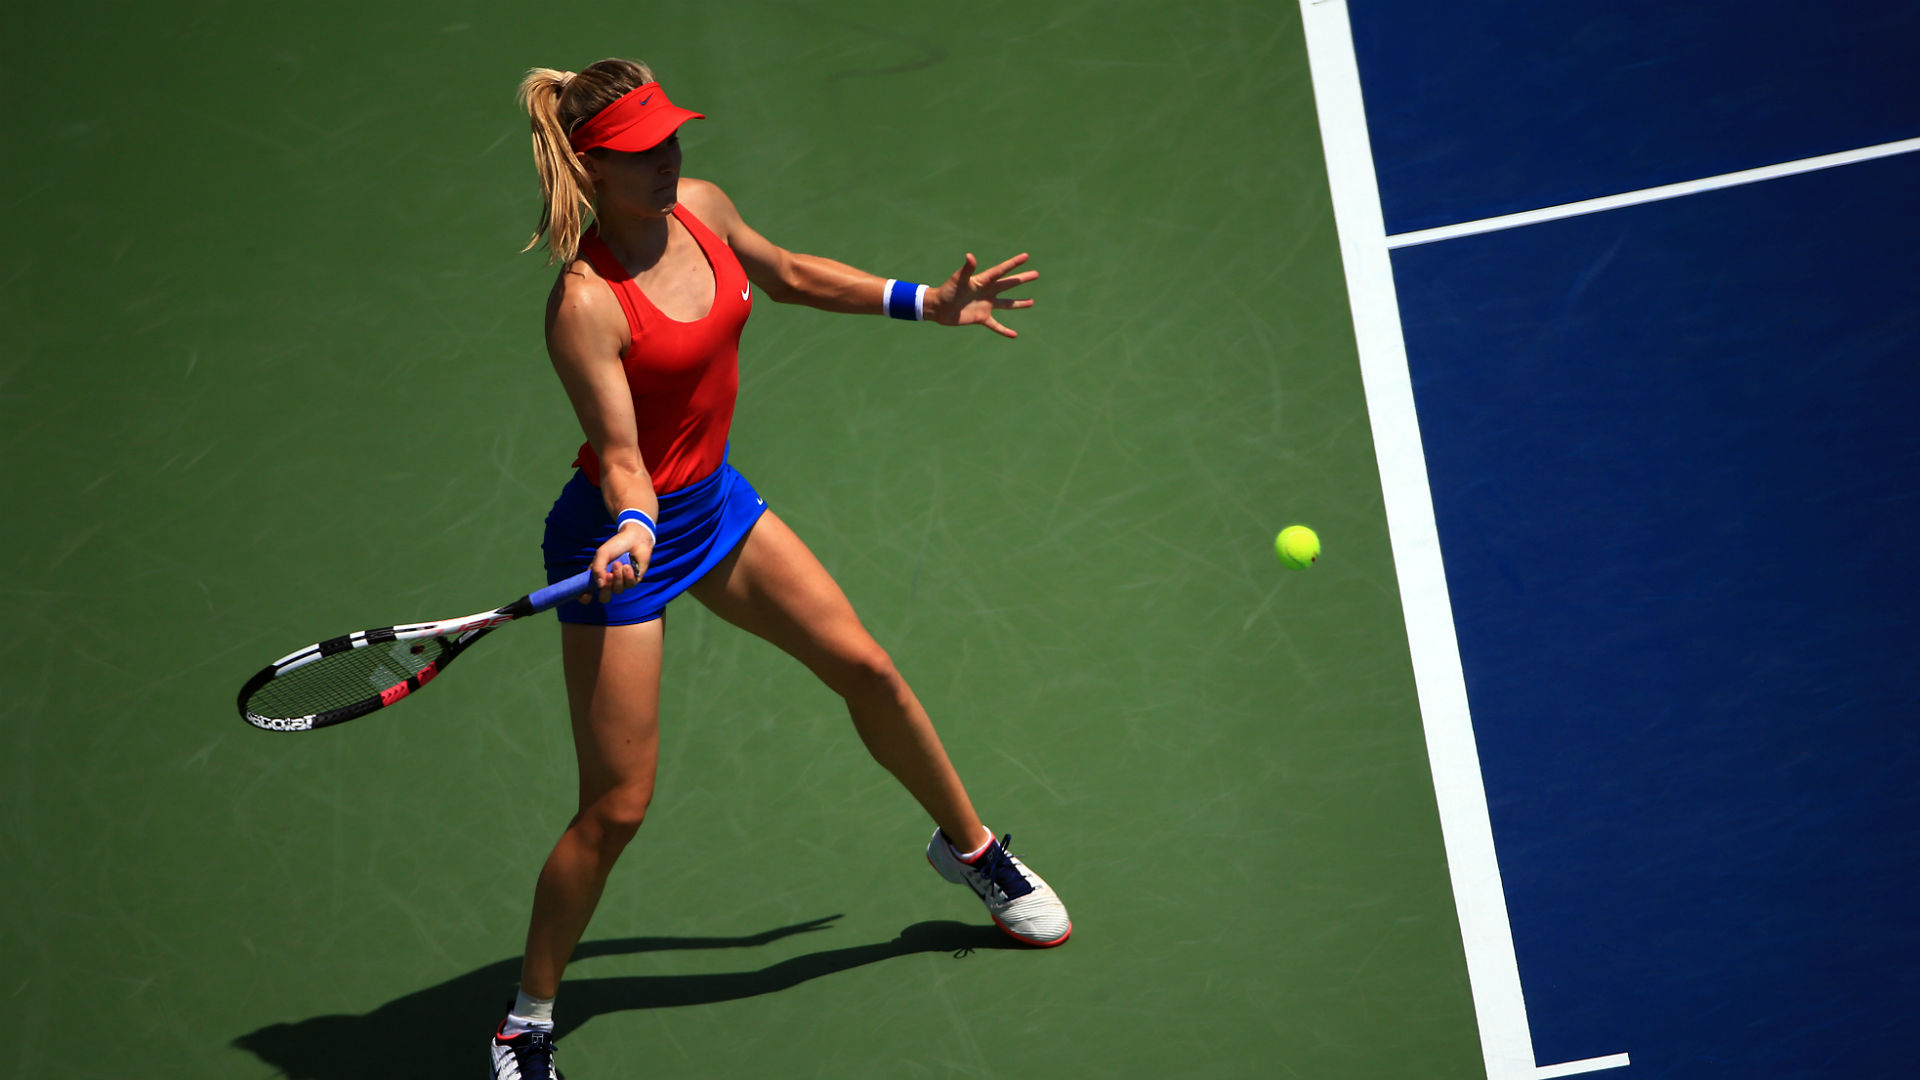 Wozniacki eases through as Bouchard and Thiem exit Rogers Cup